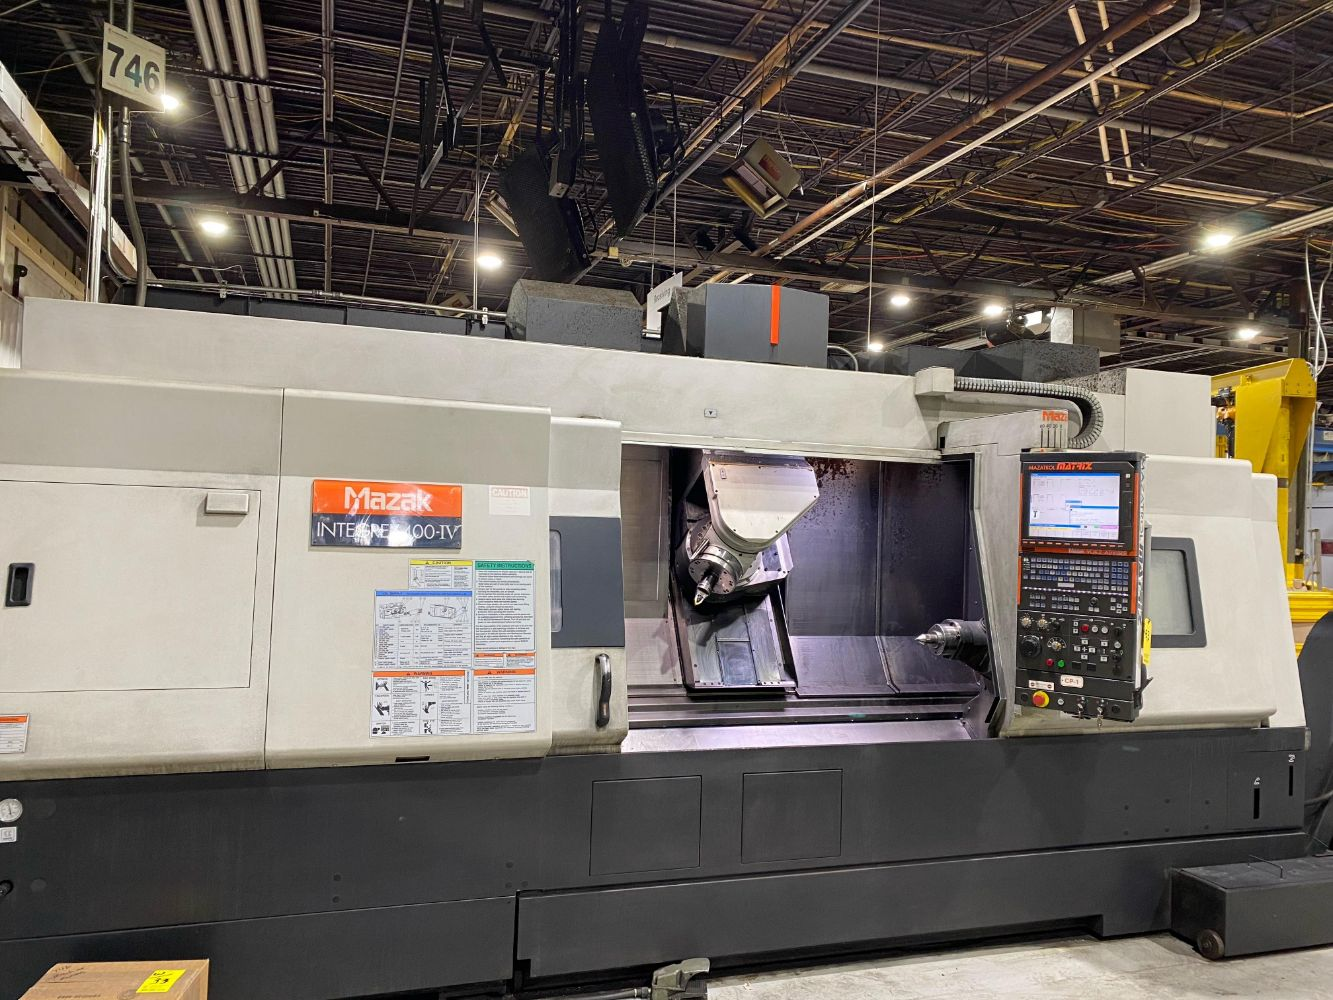 Complete Late Model 5 Axis CNC Machine Shop and Grinding Facility  (NO ONSITE BIDDING)